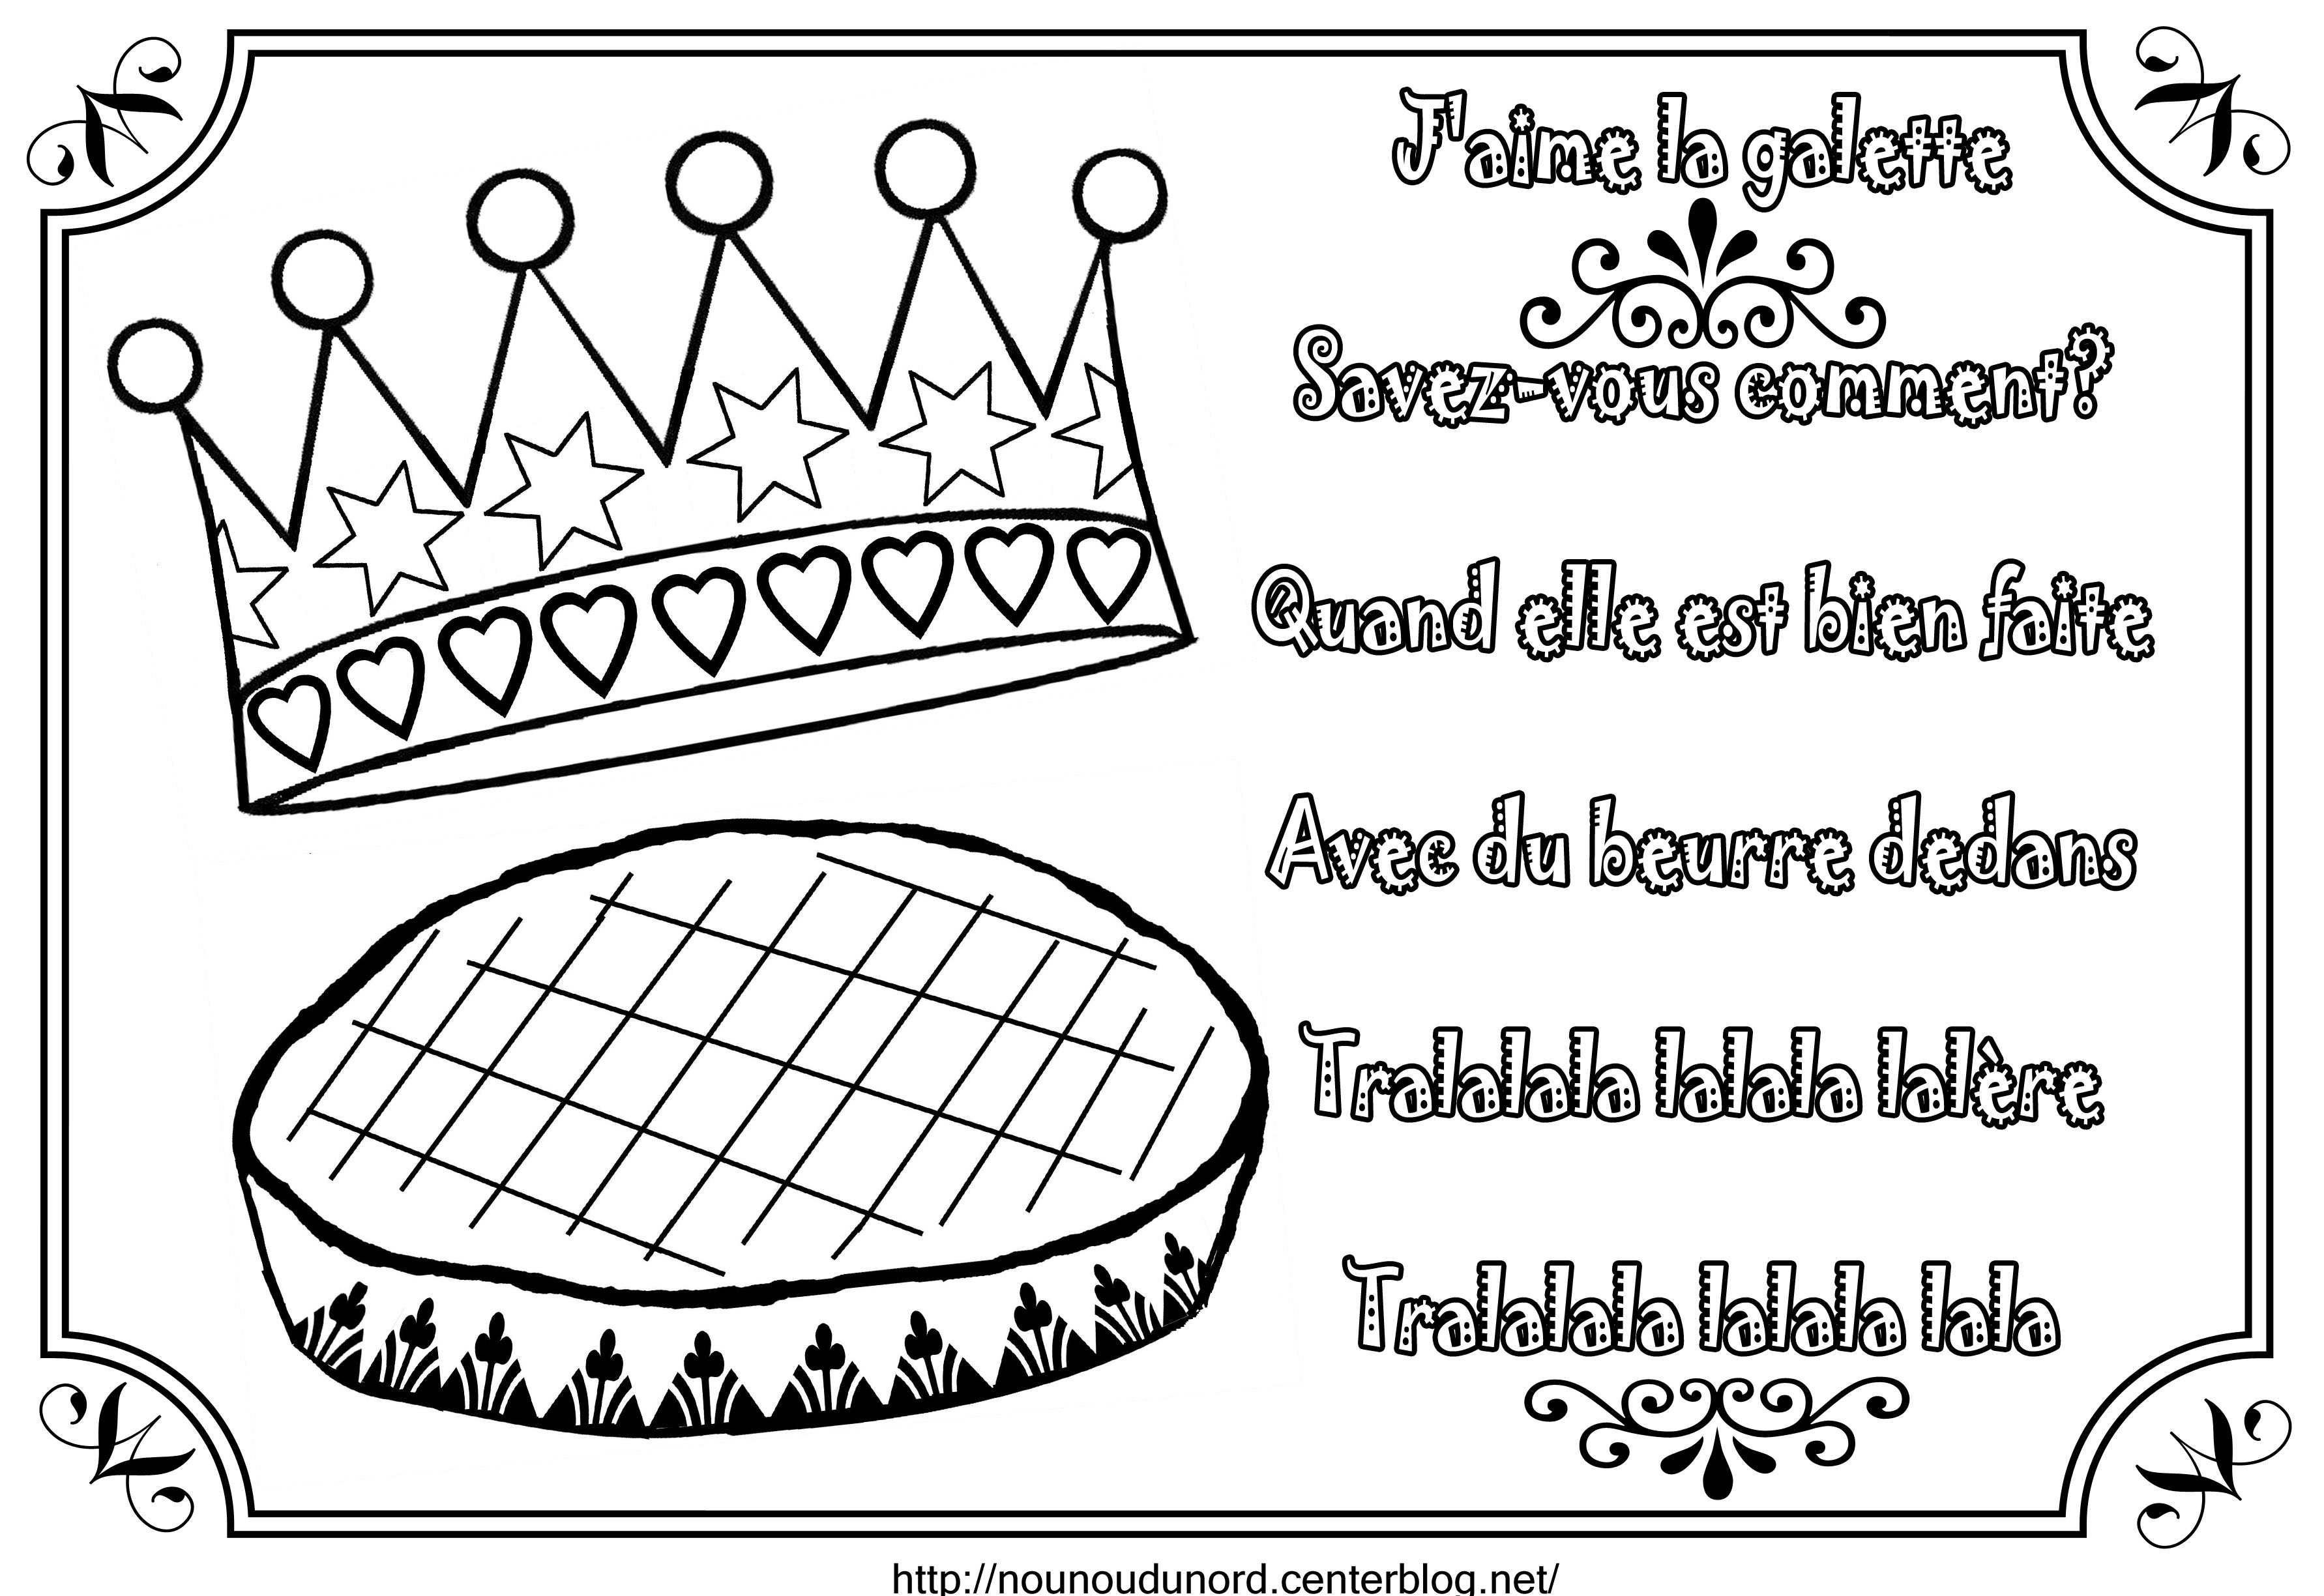 Printable Galette coloring page to print and color